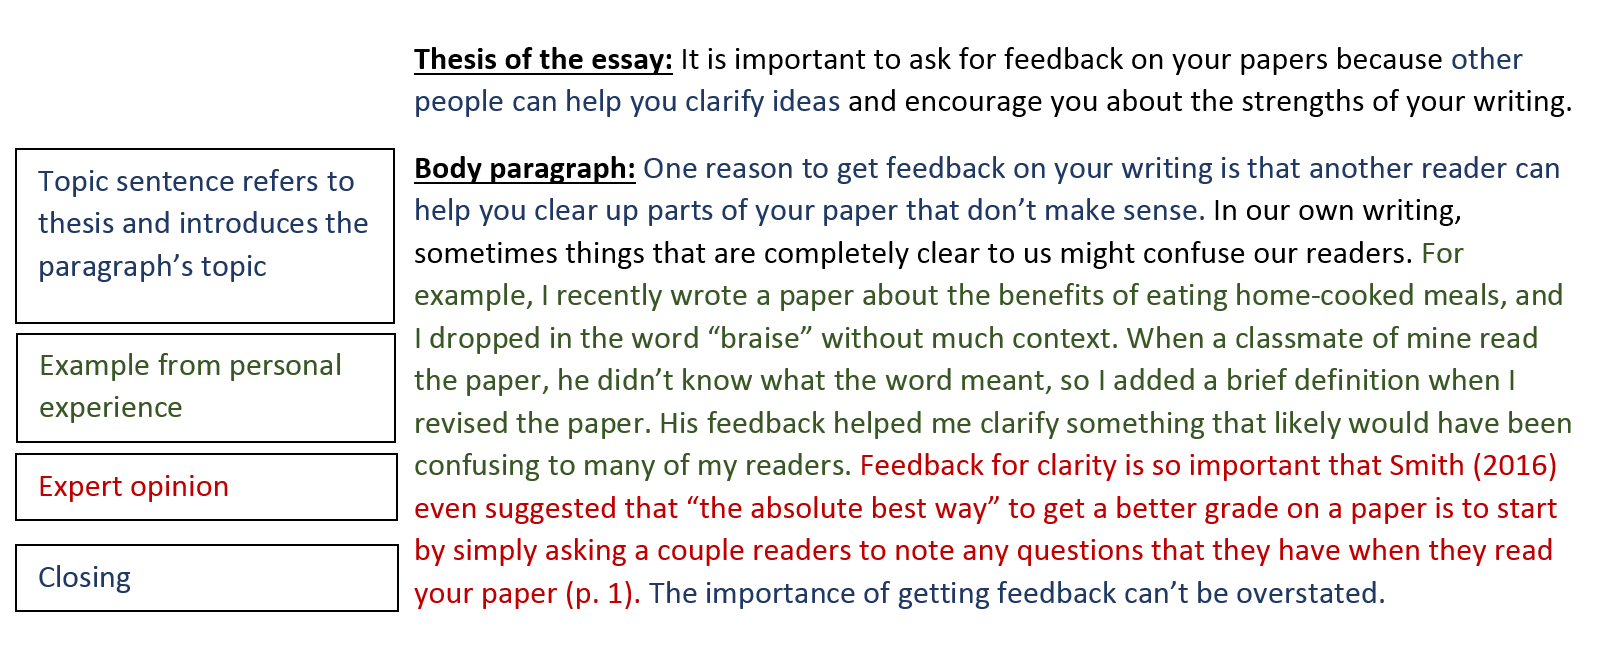 body paragraphs writing your paper research guides at eastern sample paragraph